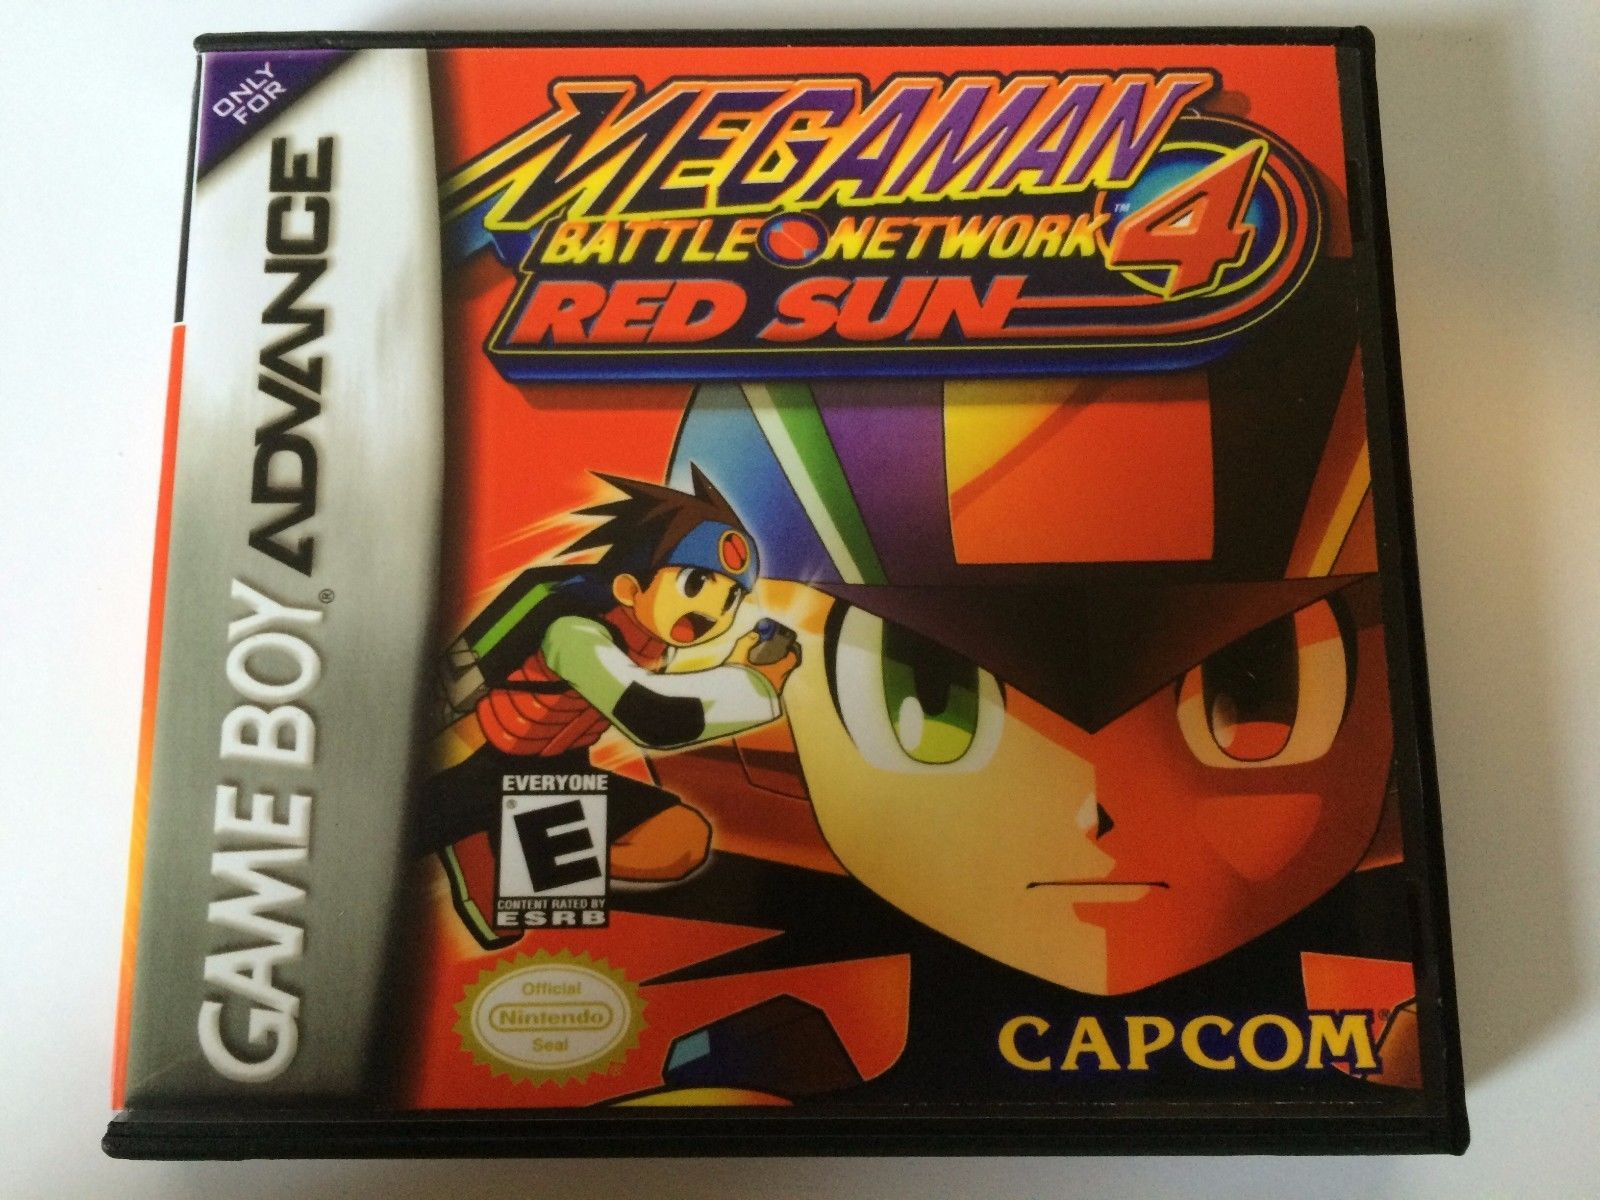 Megaman Battle Network 4 Red Sun - GBA - Replacement Case - No Game